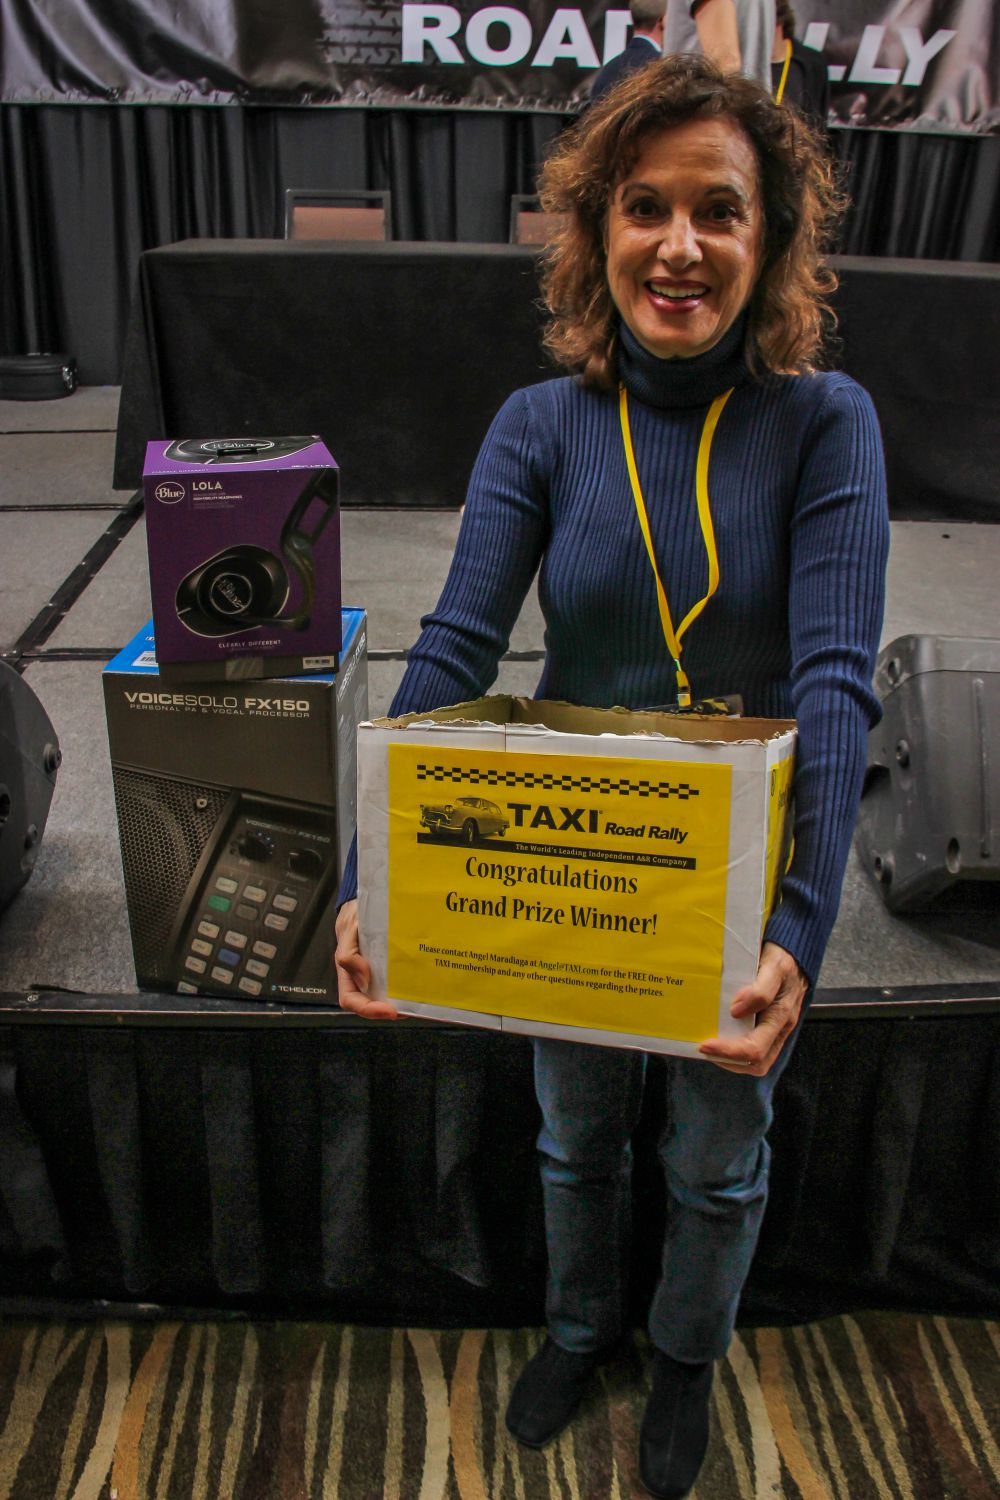 TAXI member Ariana Attie won one of the big door prizes worth about $3,000 in total! Nice going Ariana!